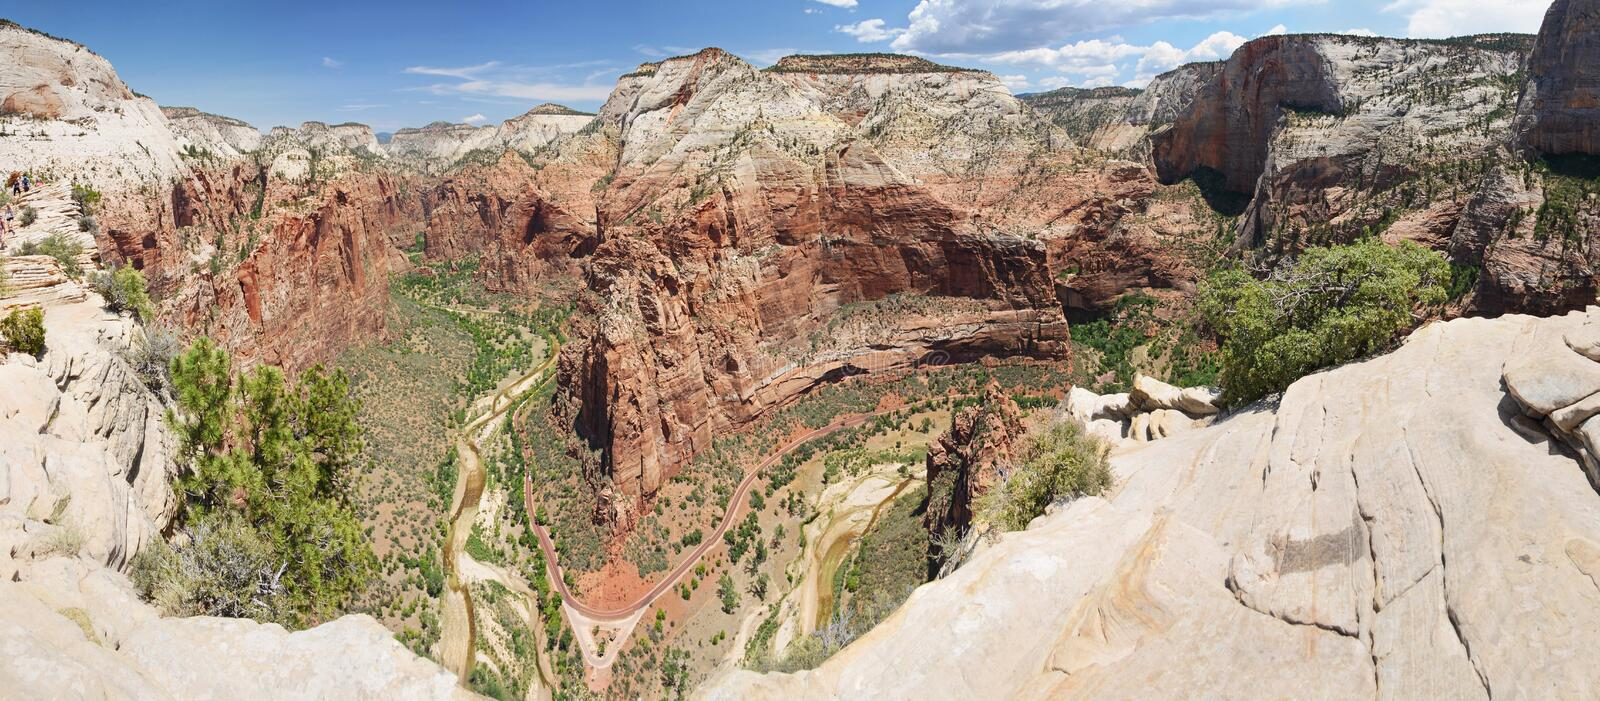 Panorama de l'atterrissage de l'ange, Zion National Park photo stock